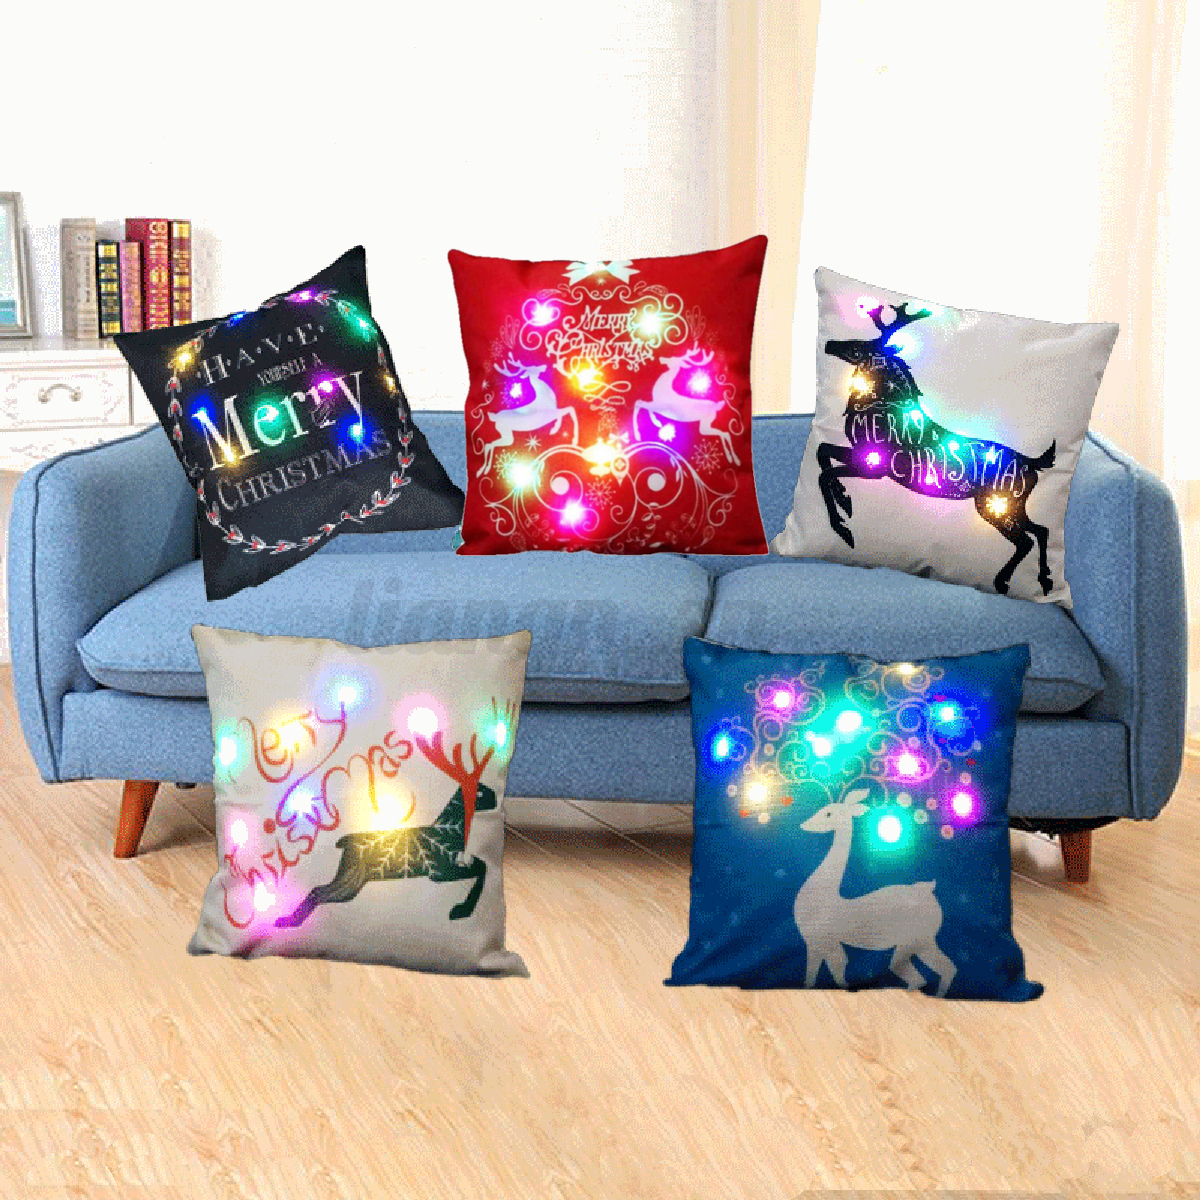 led no l housse de coussin p re no l taie d 39 oreiller sofa f te d coration maison ebay. Black Bedroom Furniture Sets. Home Design Ideas